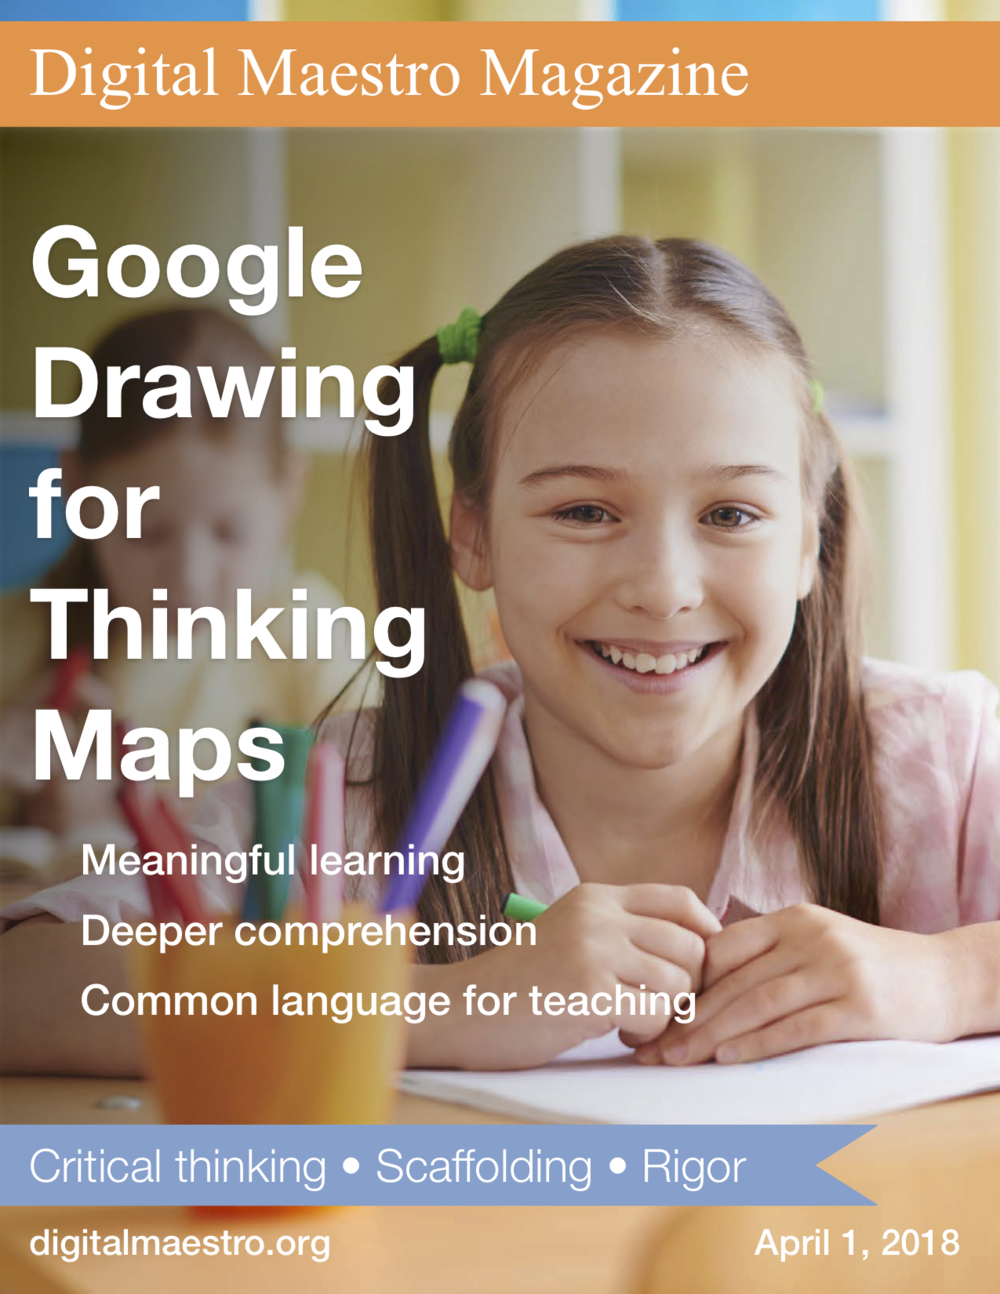 Google Drawings for graphic organizers - Use Google Drawings to create graphic organizers. Students learn basic illustrations skills with shapes, lines, and connectors.Download a free preview